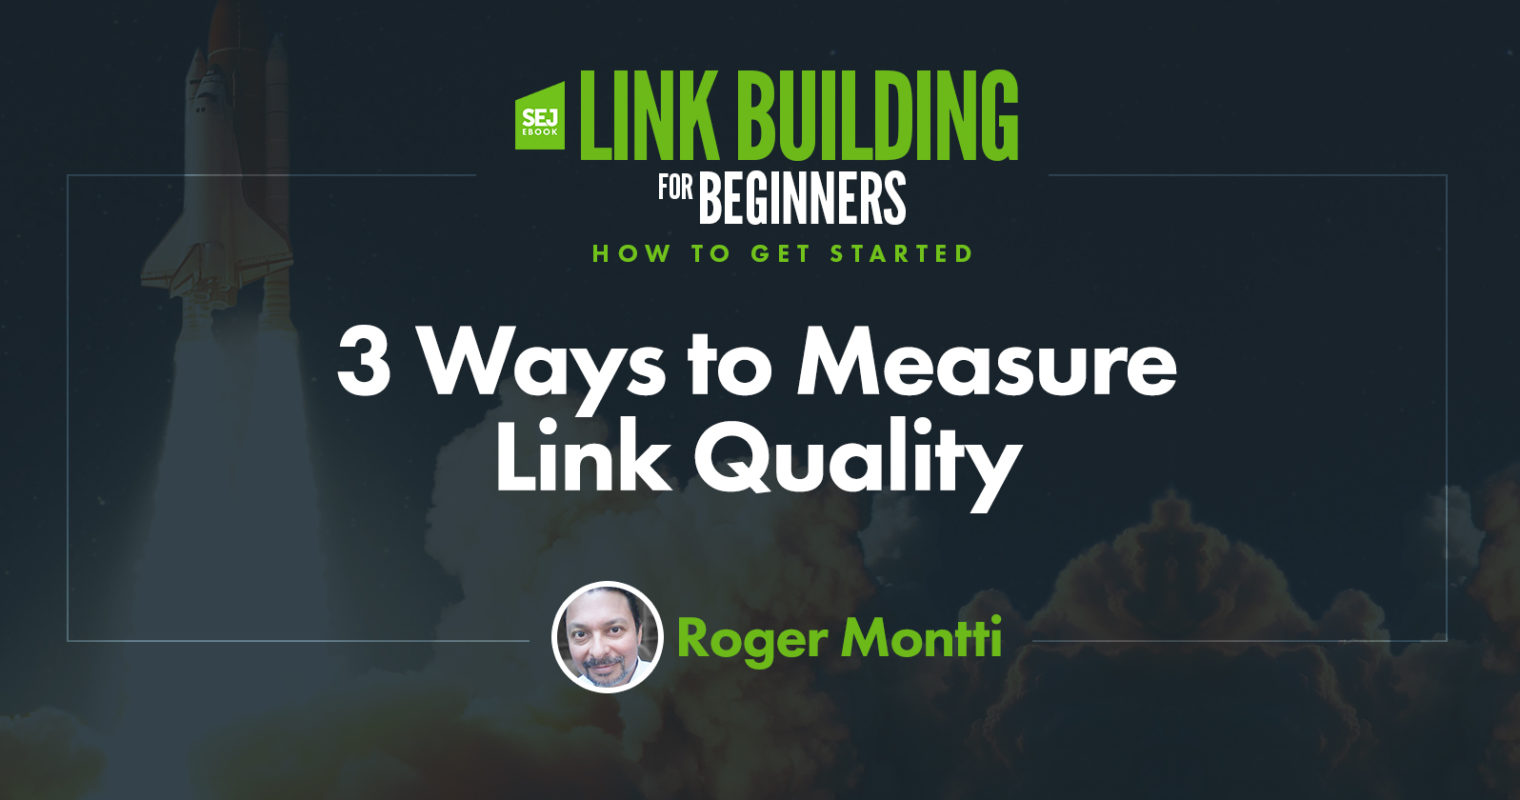 3 Ways to Measure Link Quality